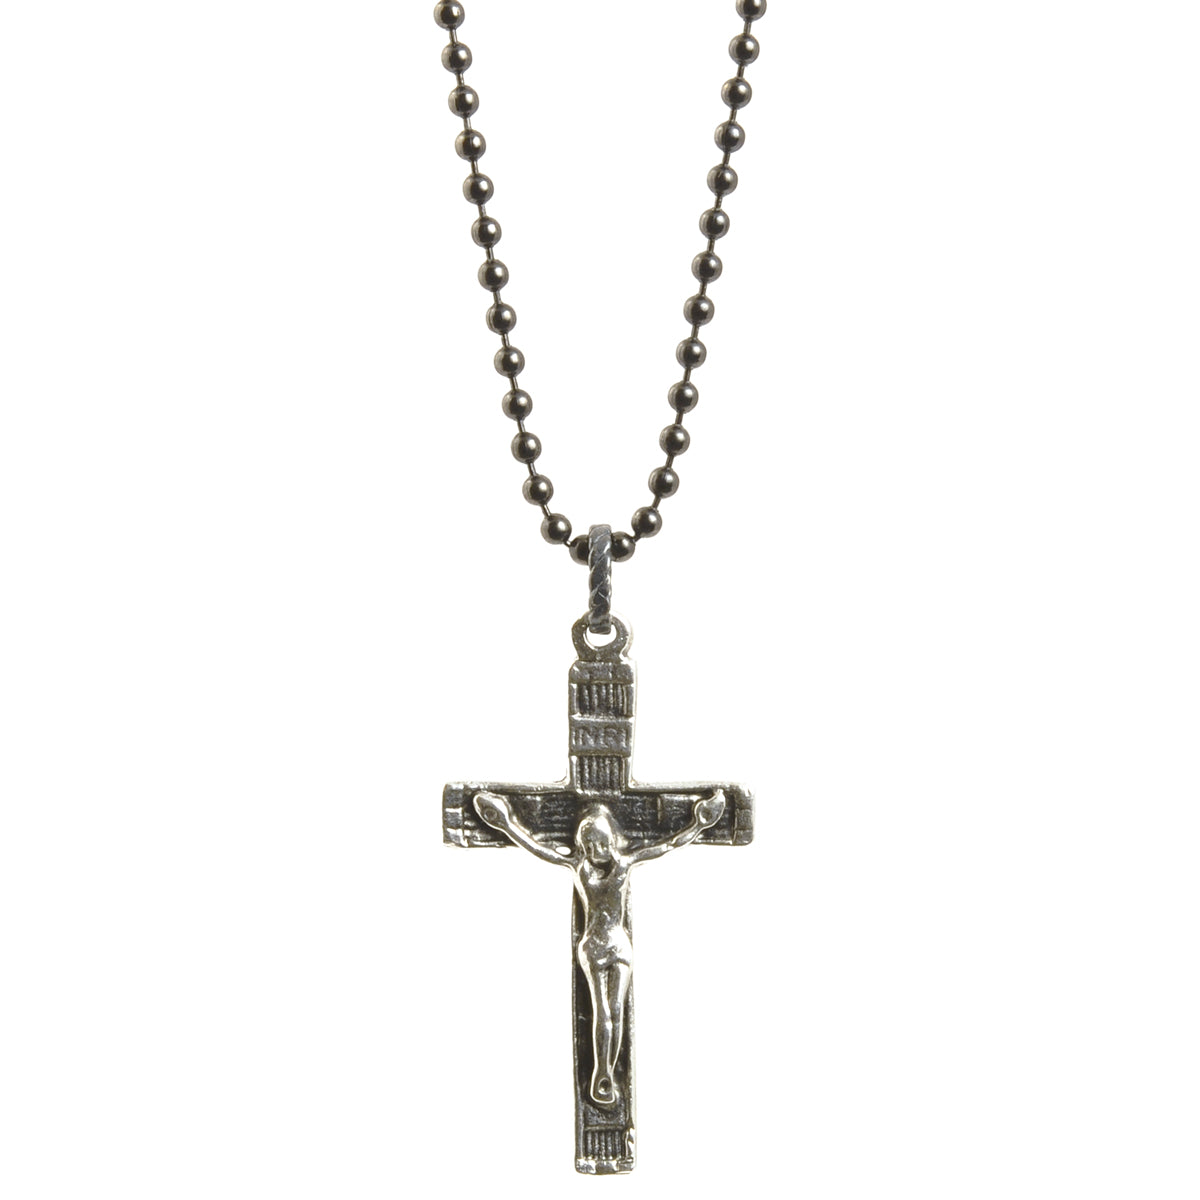 Simple-Catholic Crucifix Cross-Antique Silver-Black Oxide Ball Chain Necklace-30 Inches